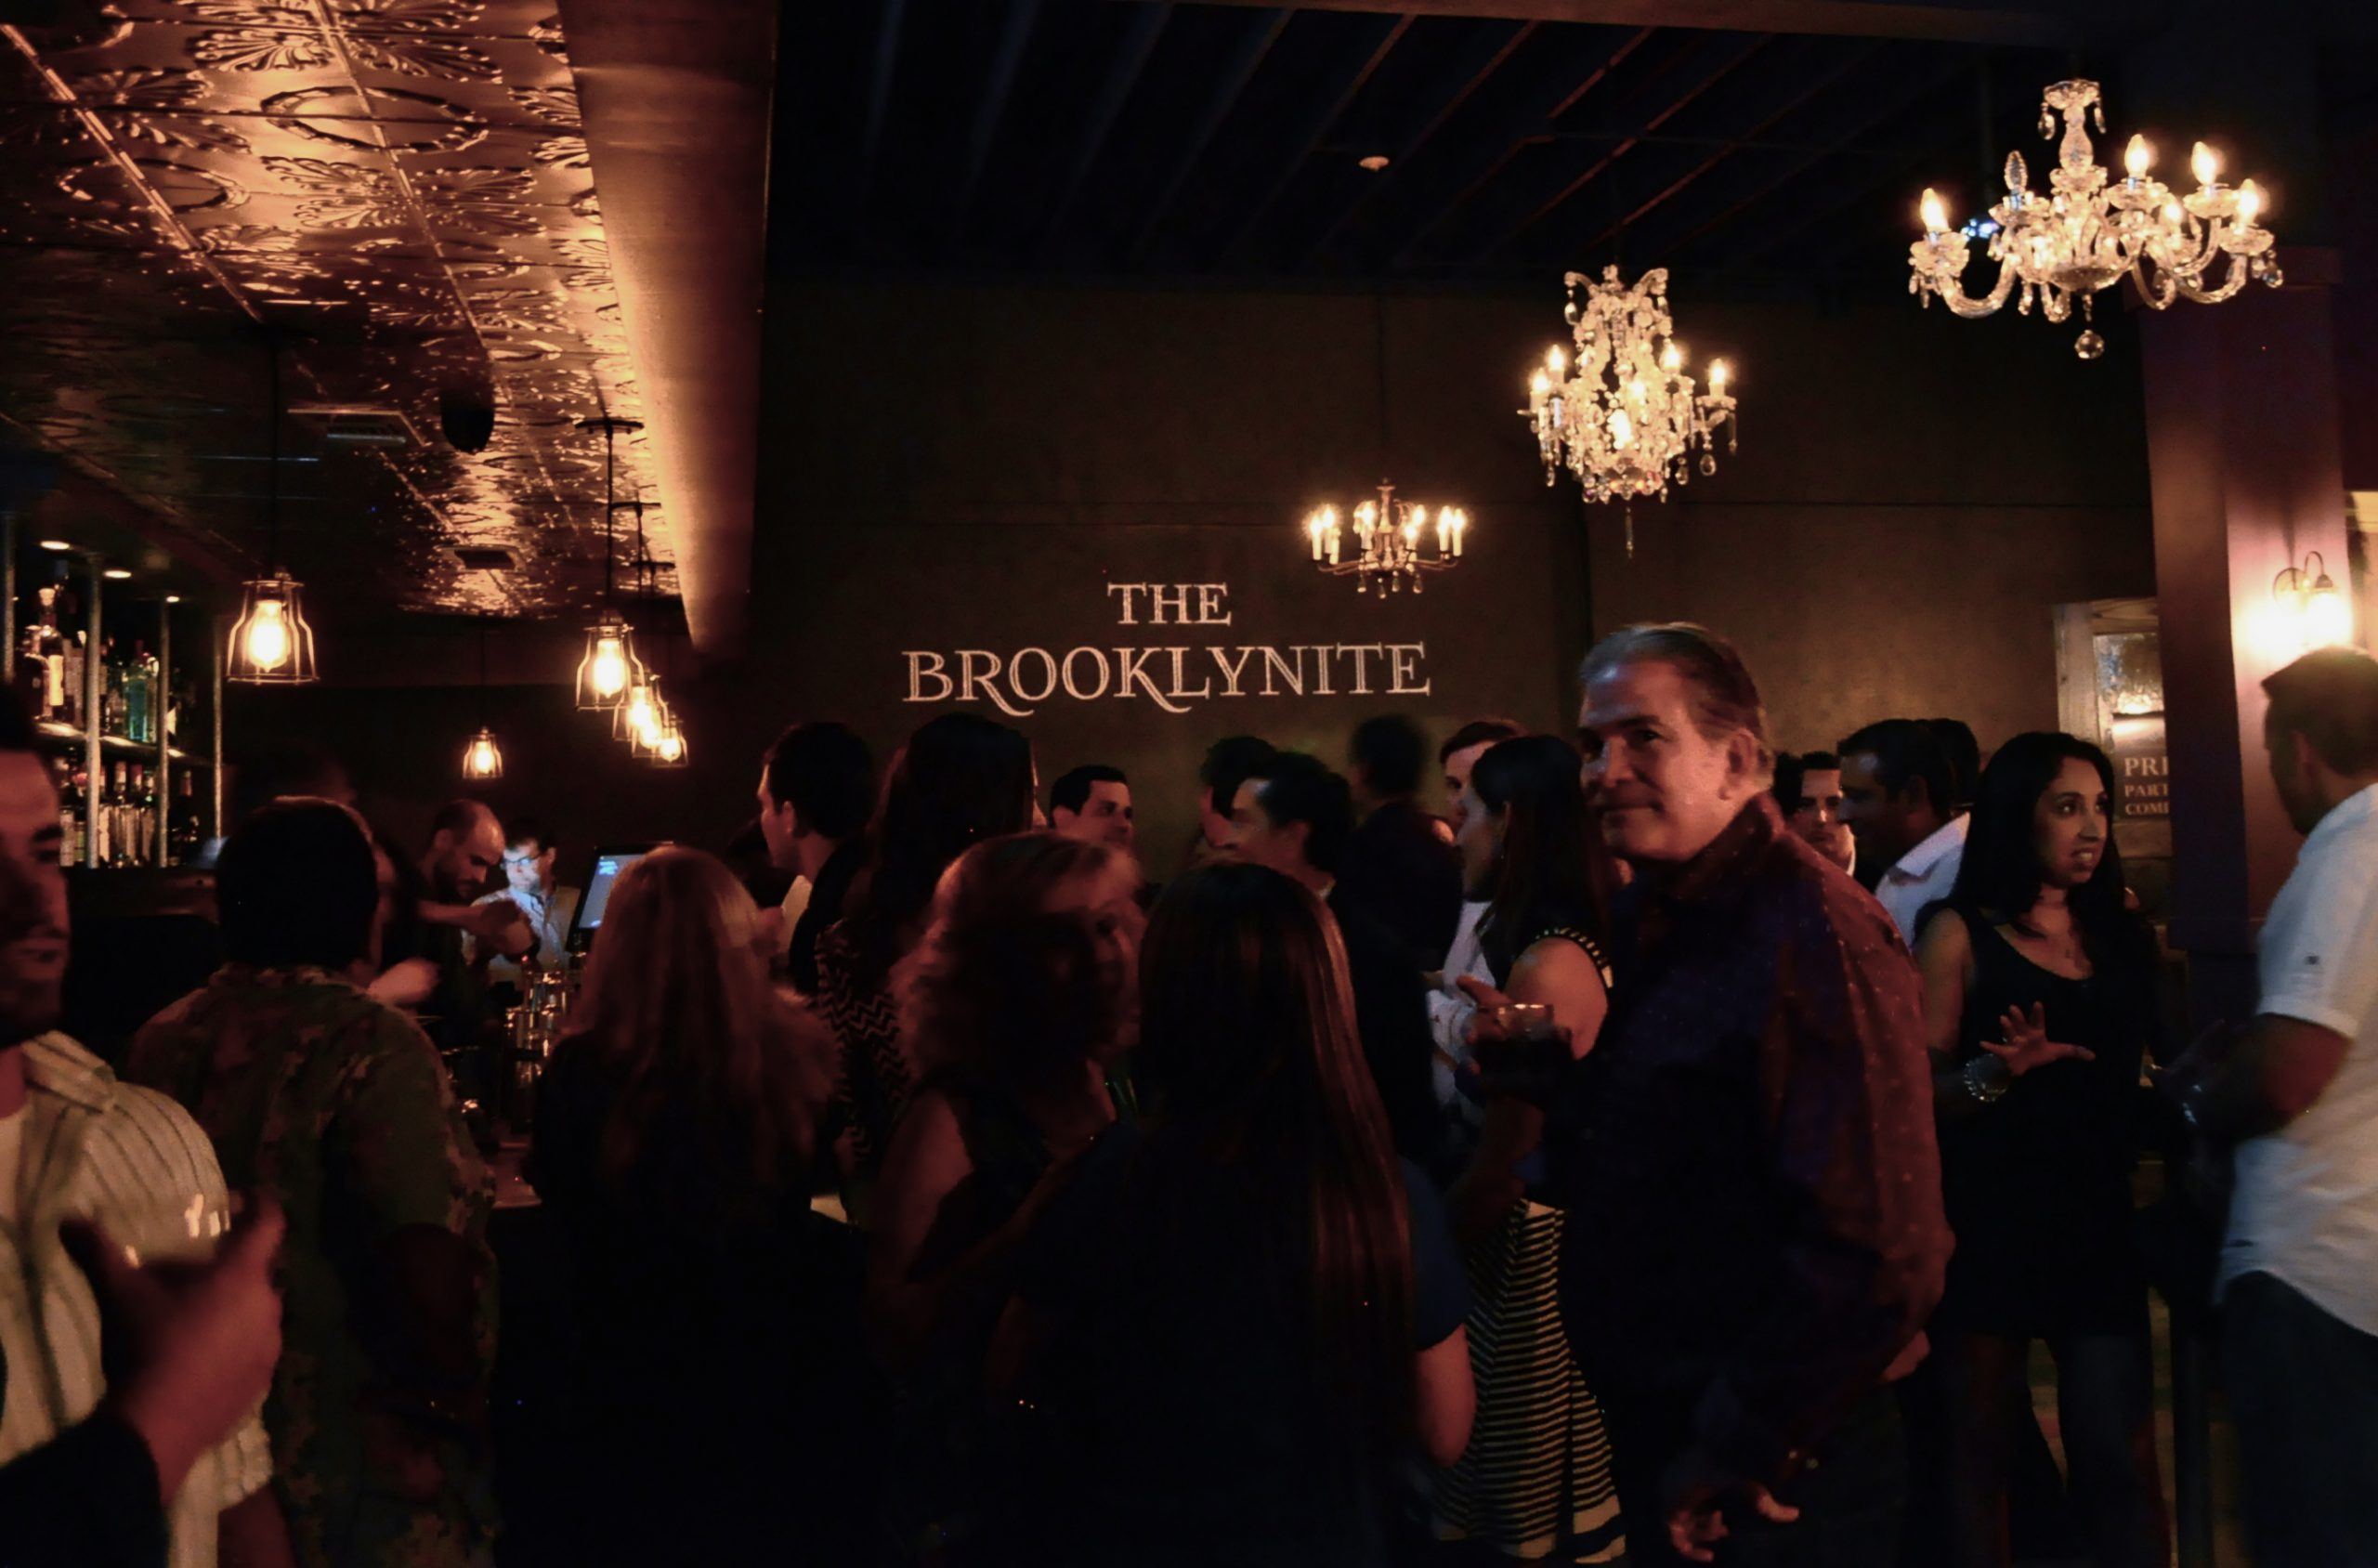 Opening night at the Brooklynite. Photo by Iris Dimmick.